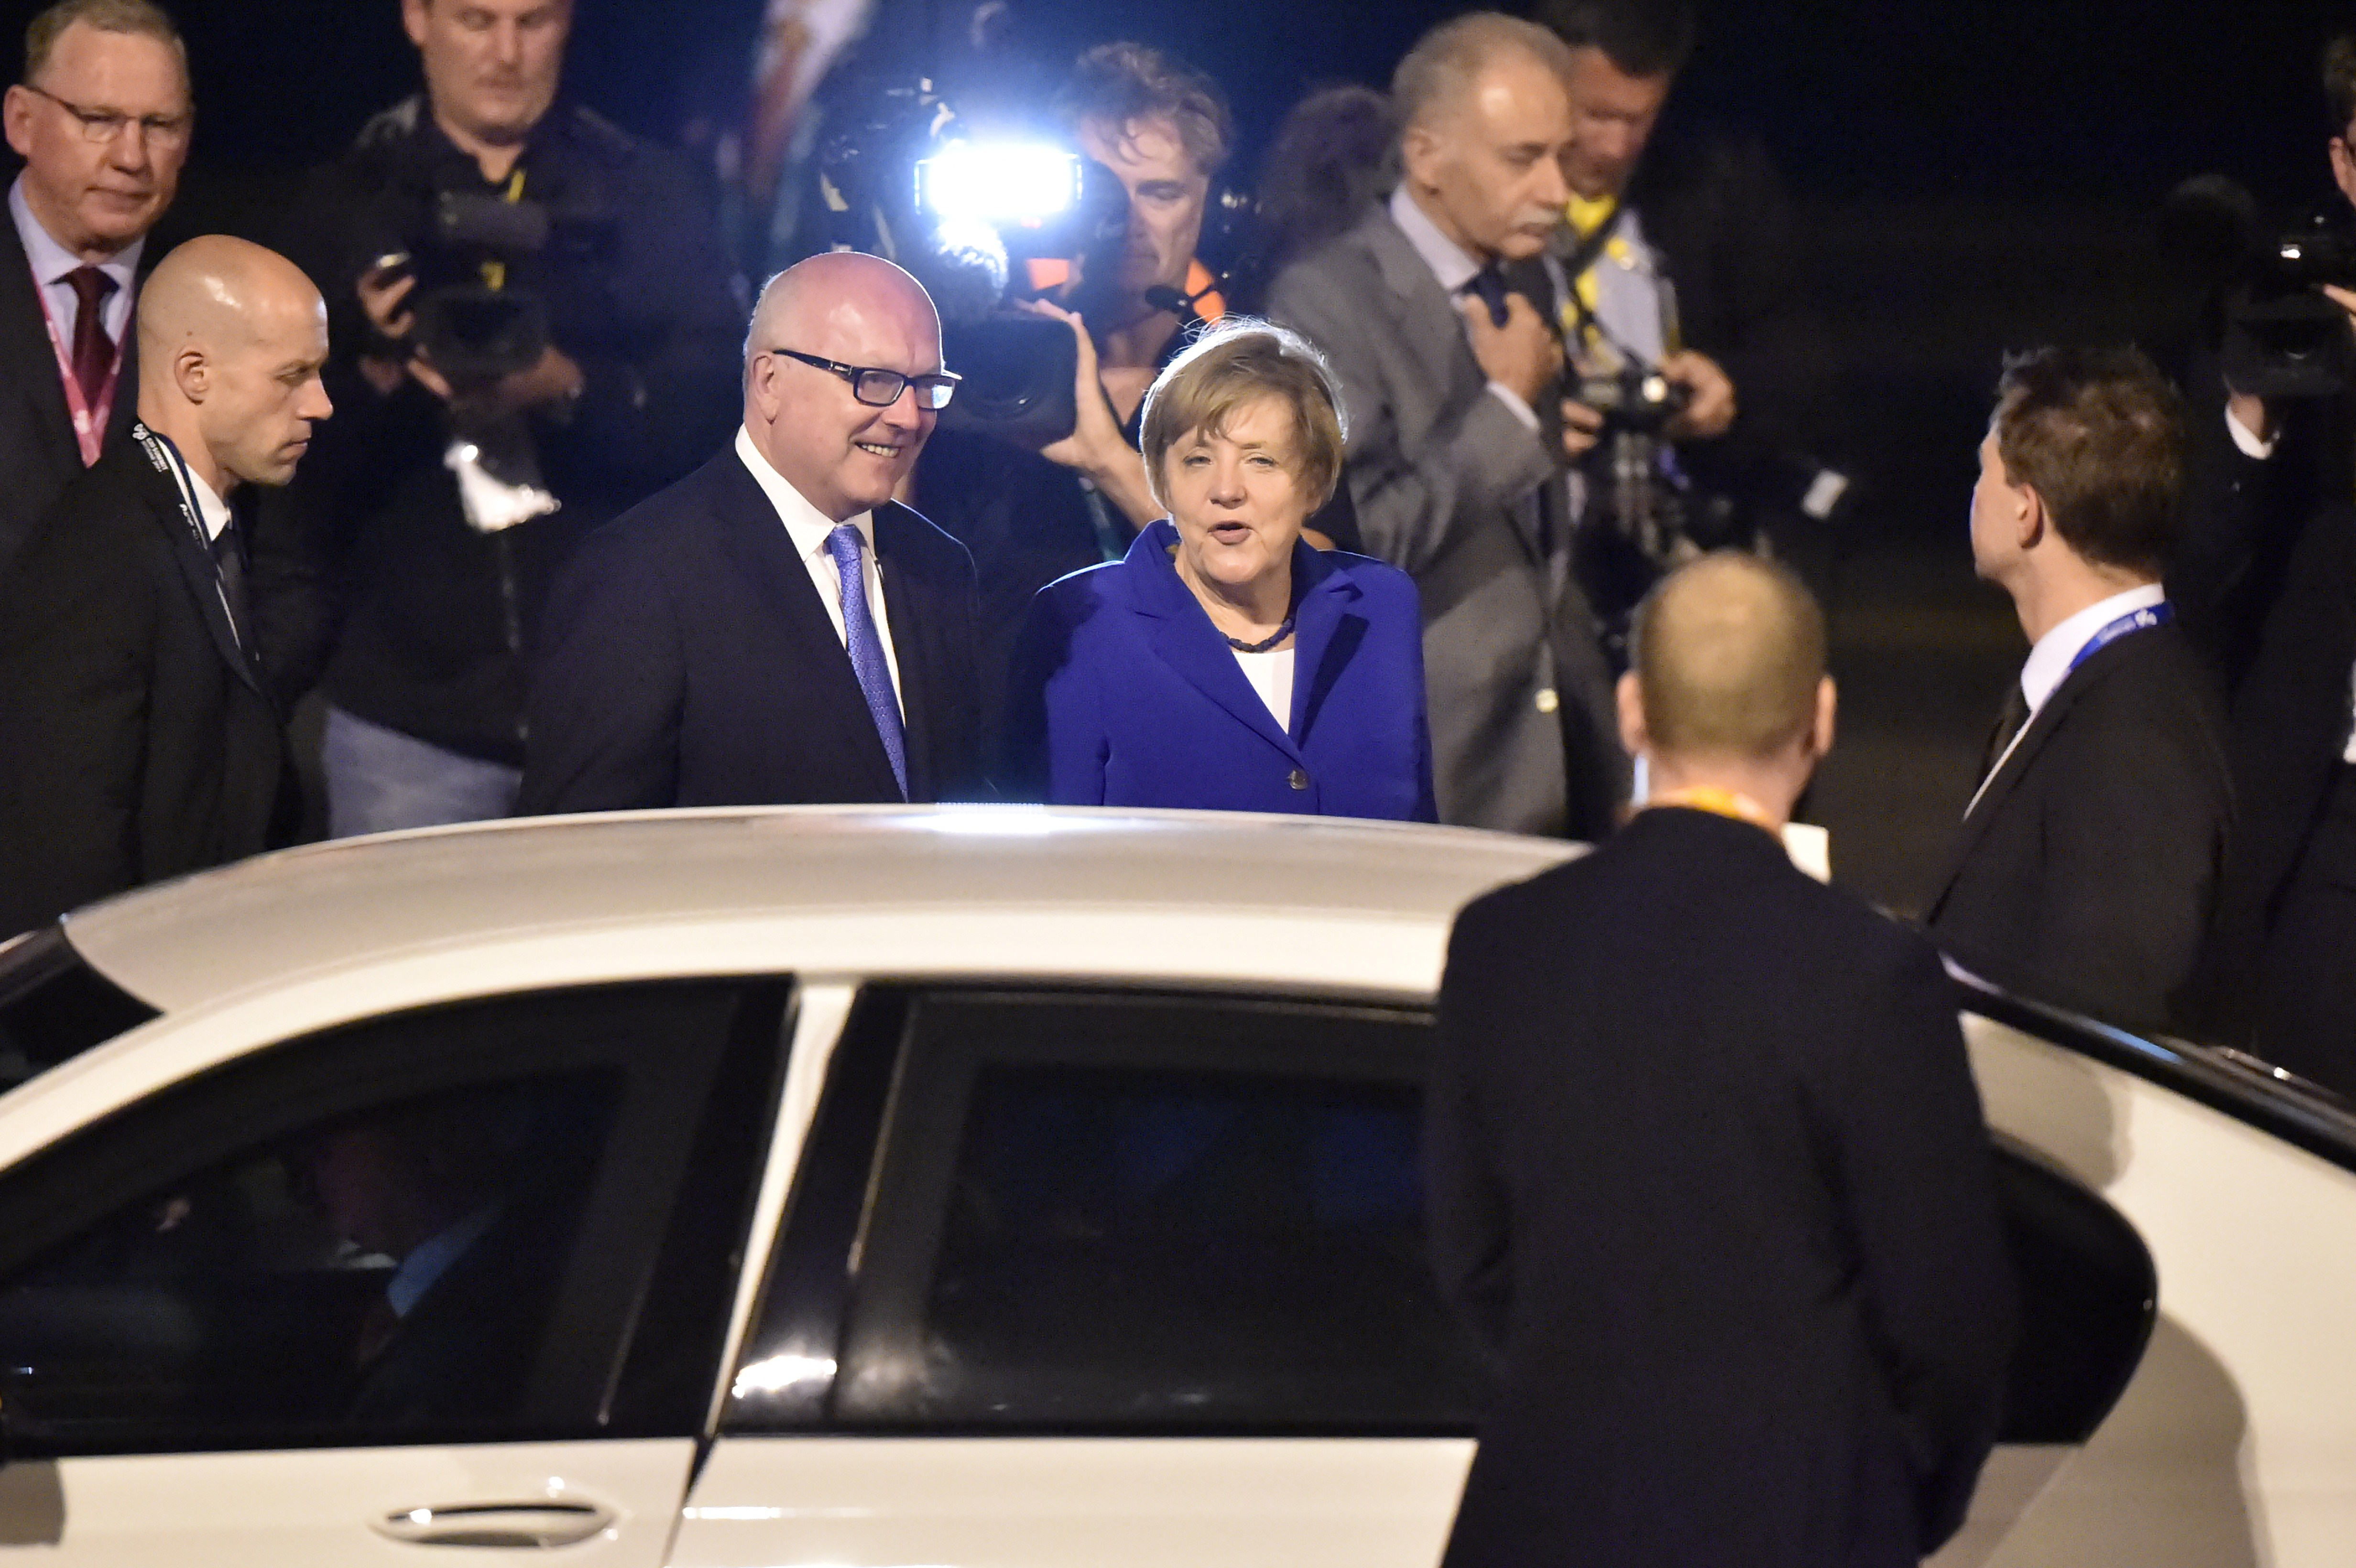 Germany's Chancellor Angela Merkel (C) is welcomed upon her arrival at the airport in Brisbane to take part in the G20 summit on November 14, 2014.